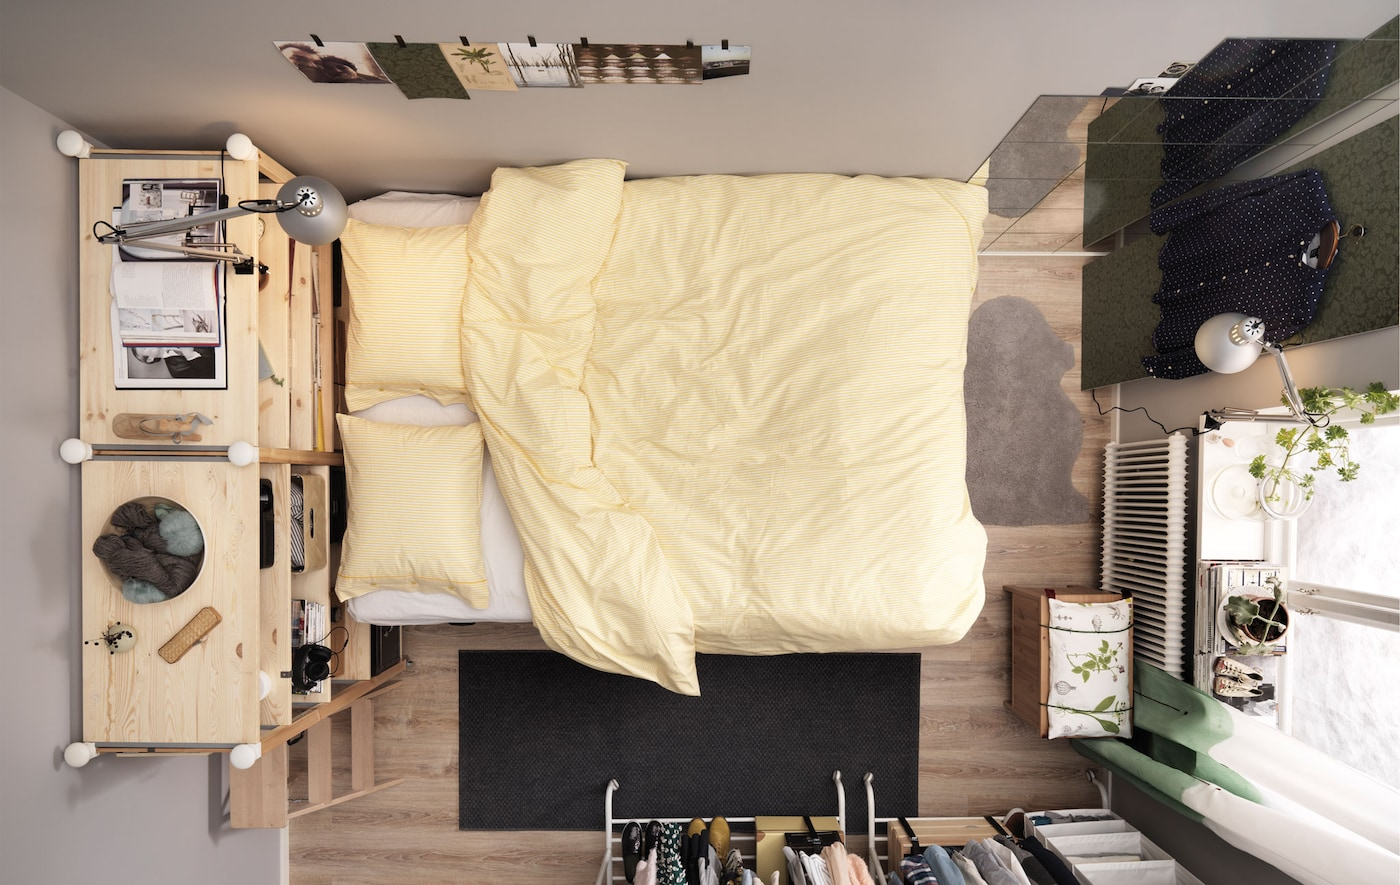 Small bedroom for two with a platform bed and lots of storage